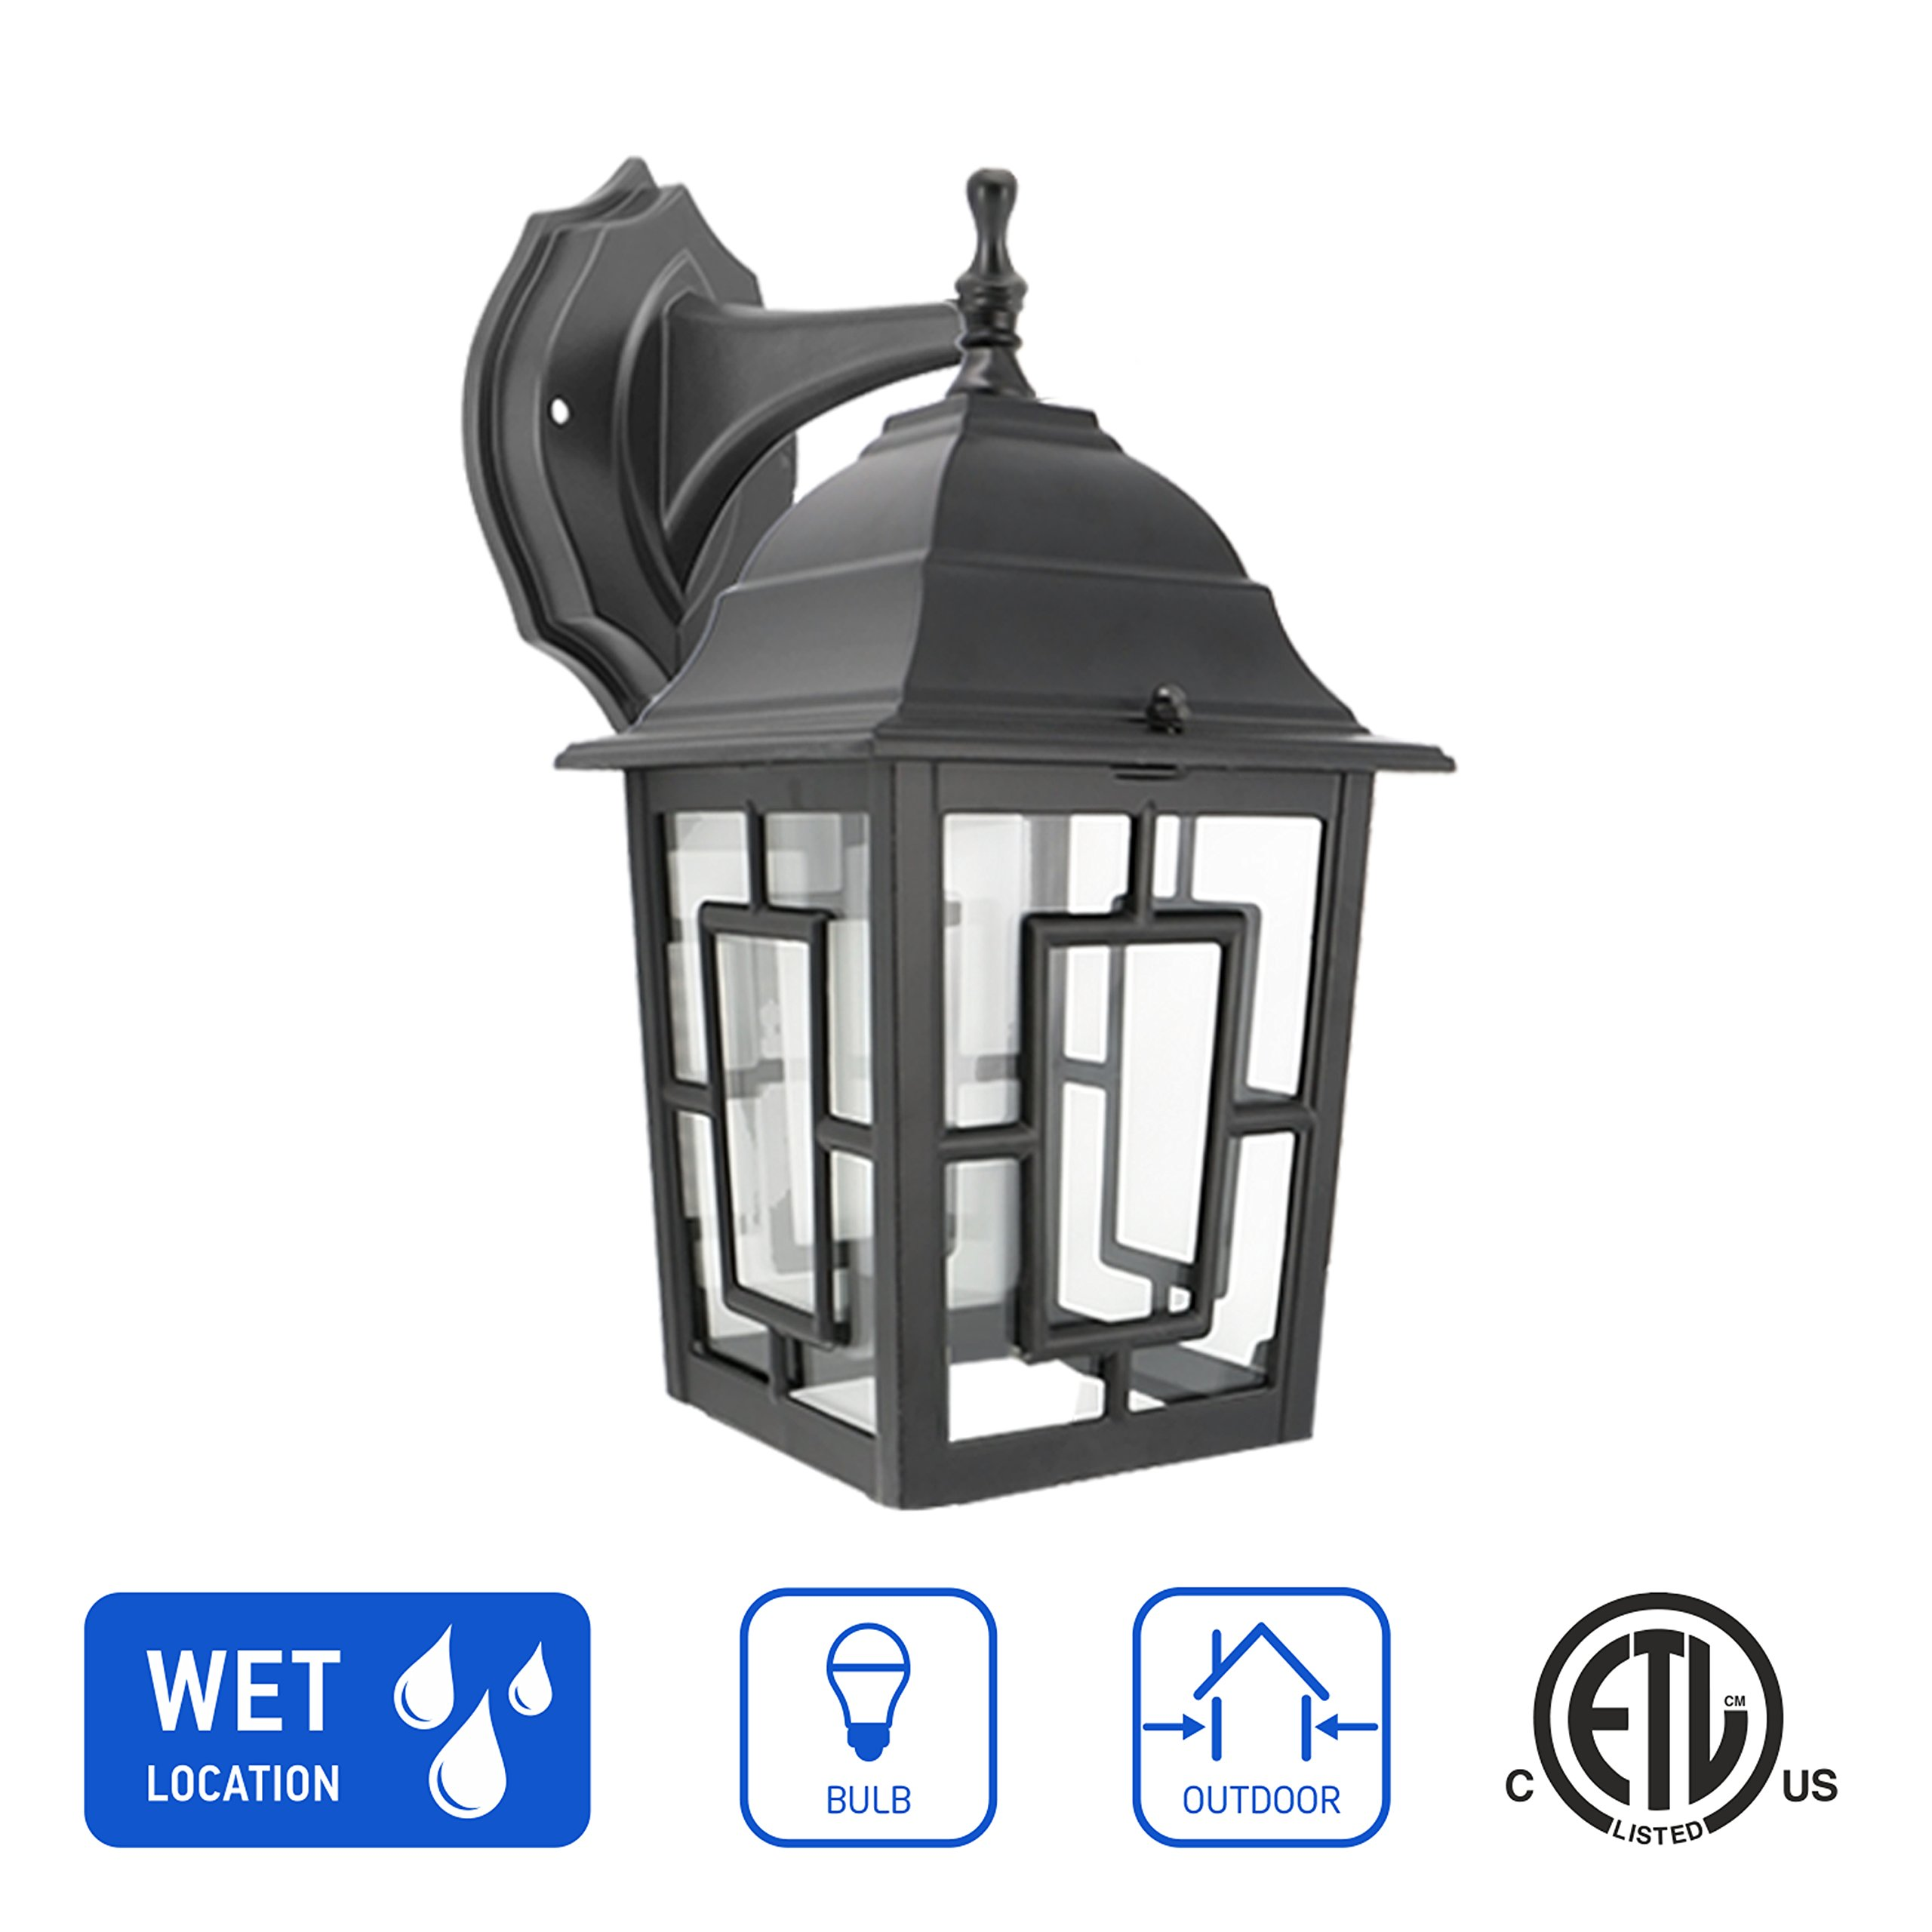 in Home 1-Light Outdoor Wall Mount Lantern Downward Fixture L05 Series Traditional Design Black Finish, Clear Glass Shade, ETL Listed